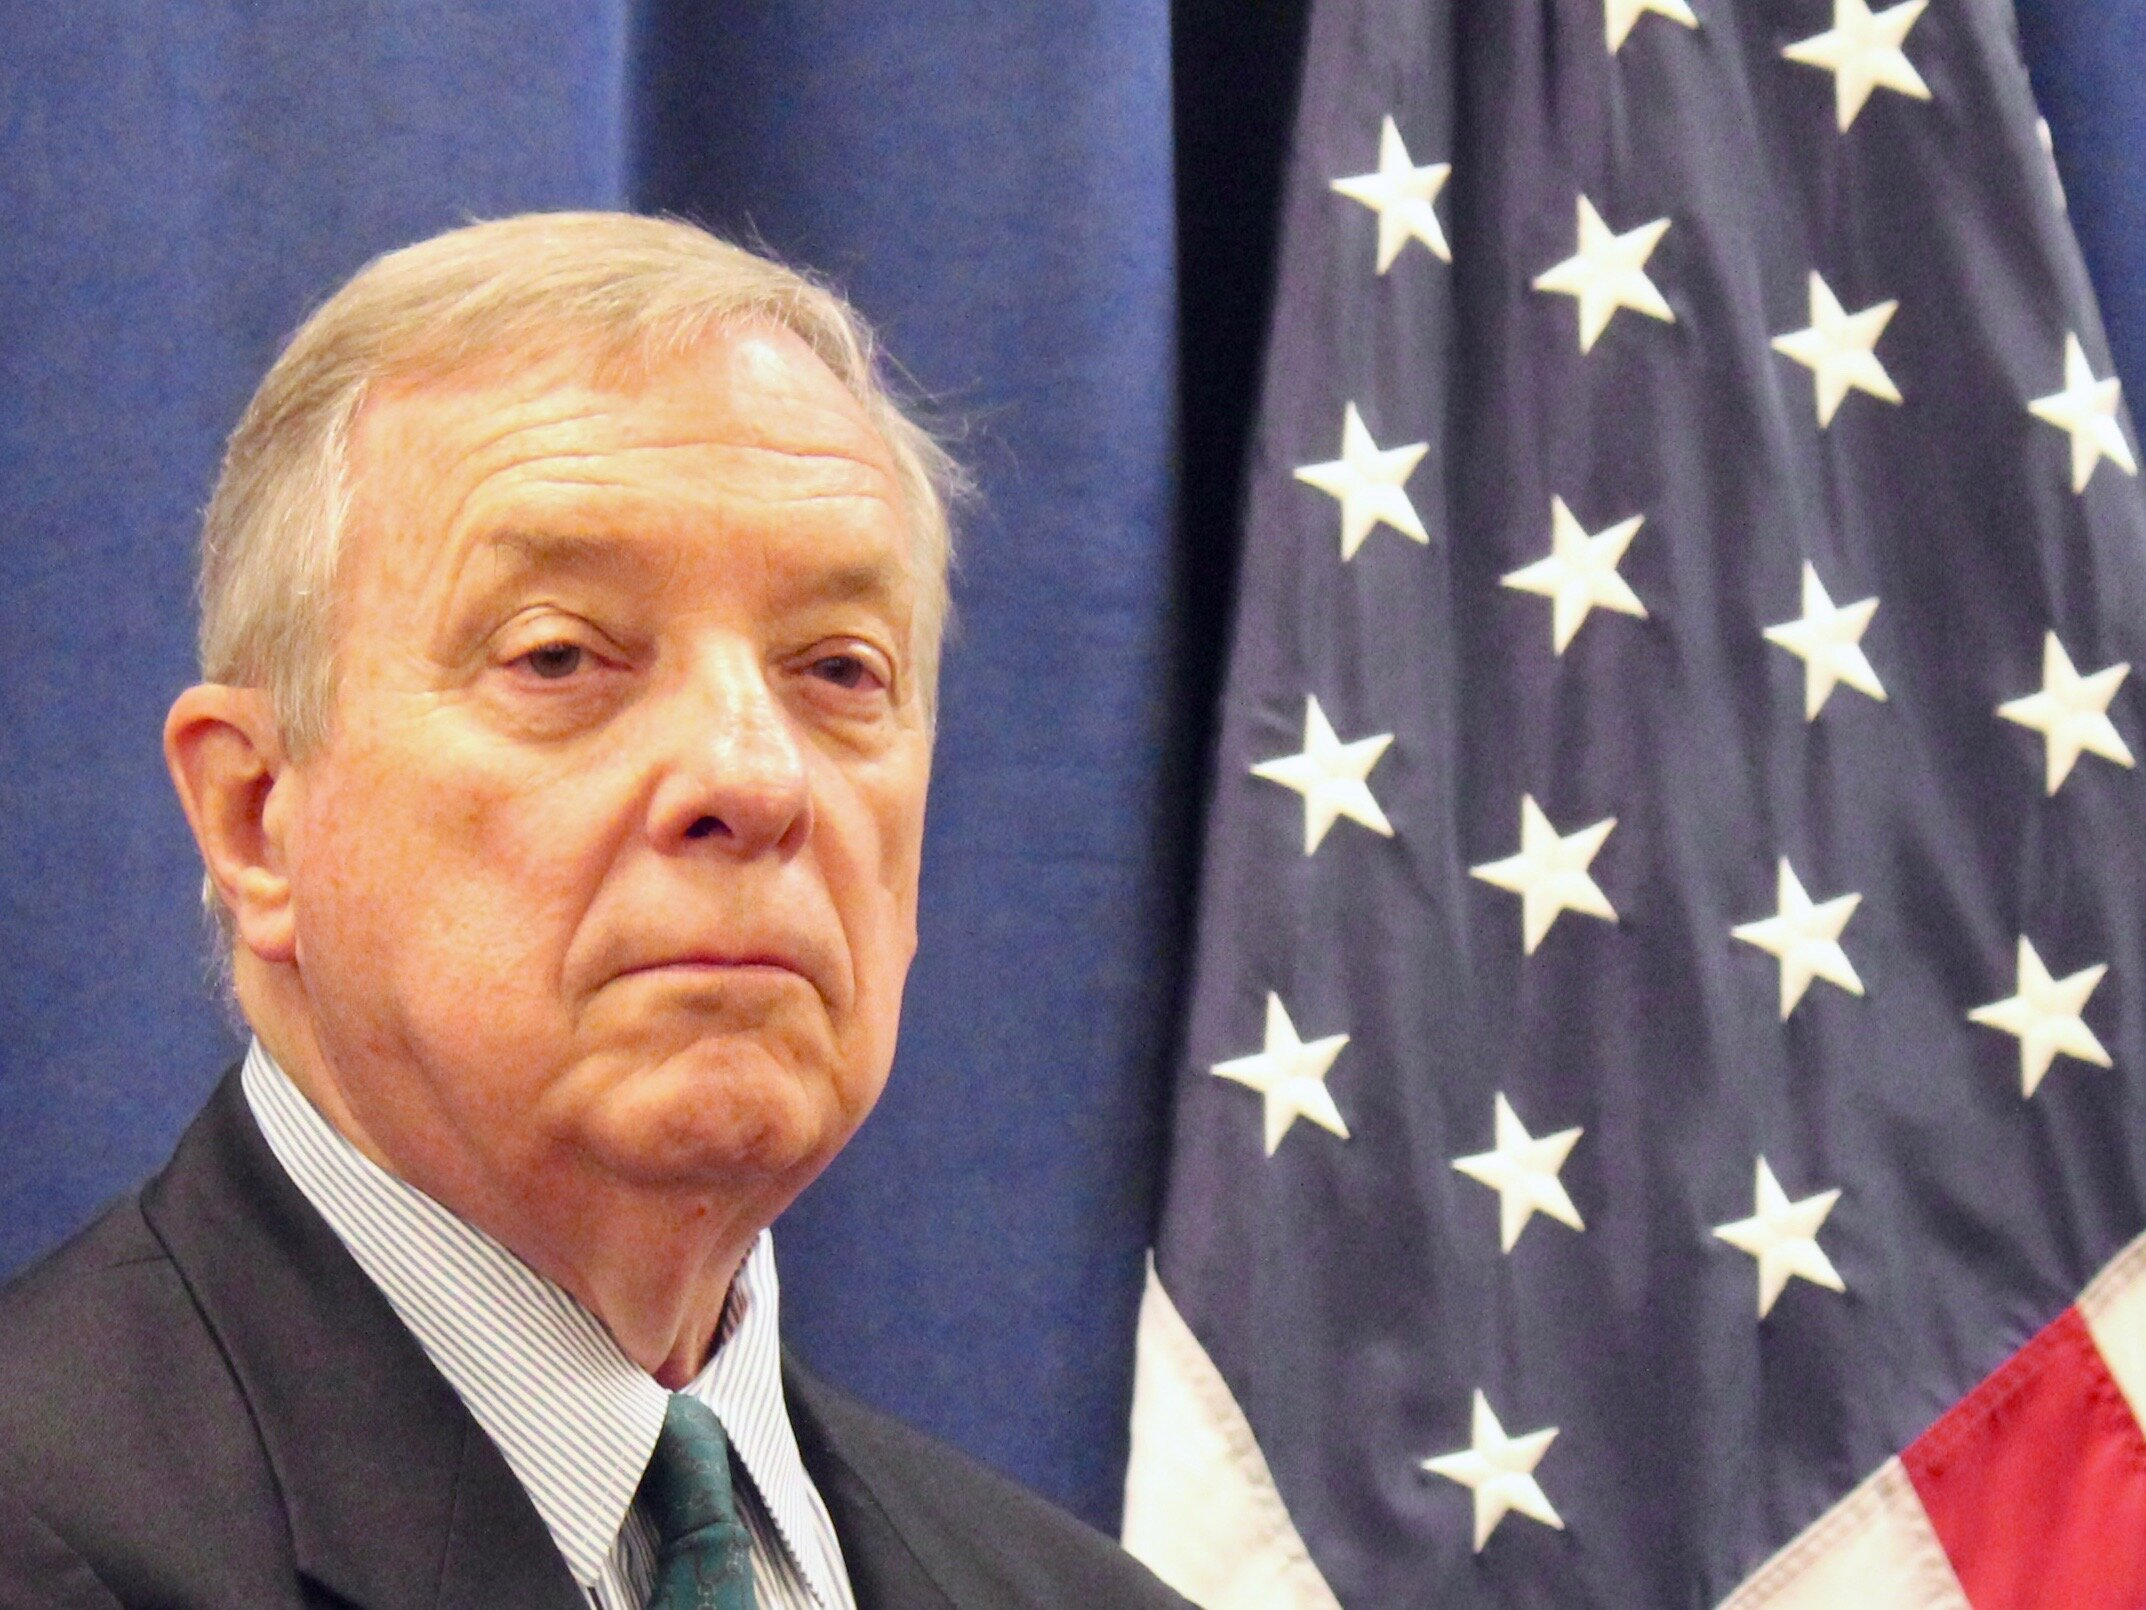 U.S. Sen. Dick Durbin is the highest-ranking member of the Senate to seek an impeachment probe into President Trump. (One Illinois/Ted Cox)